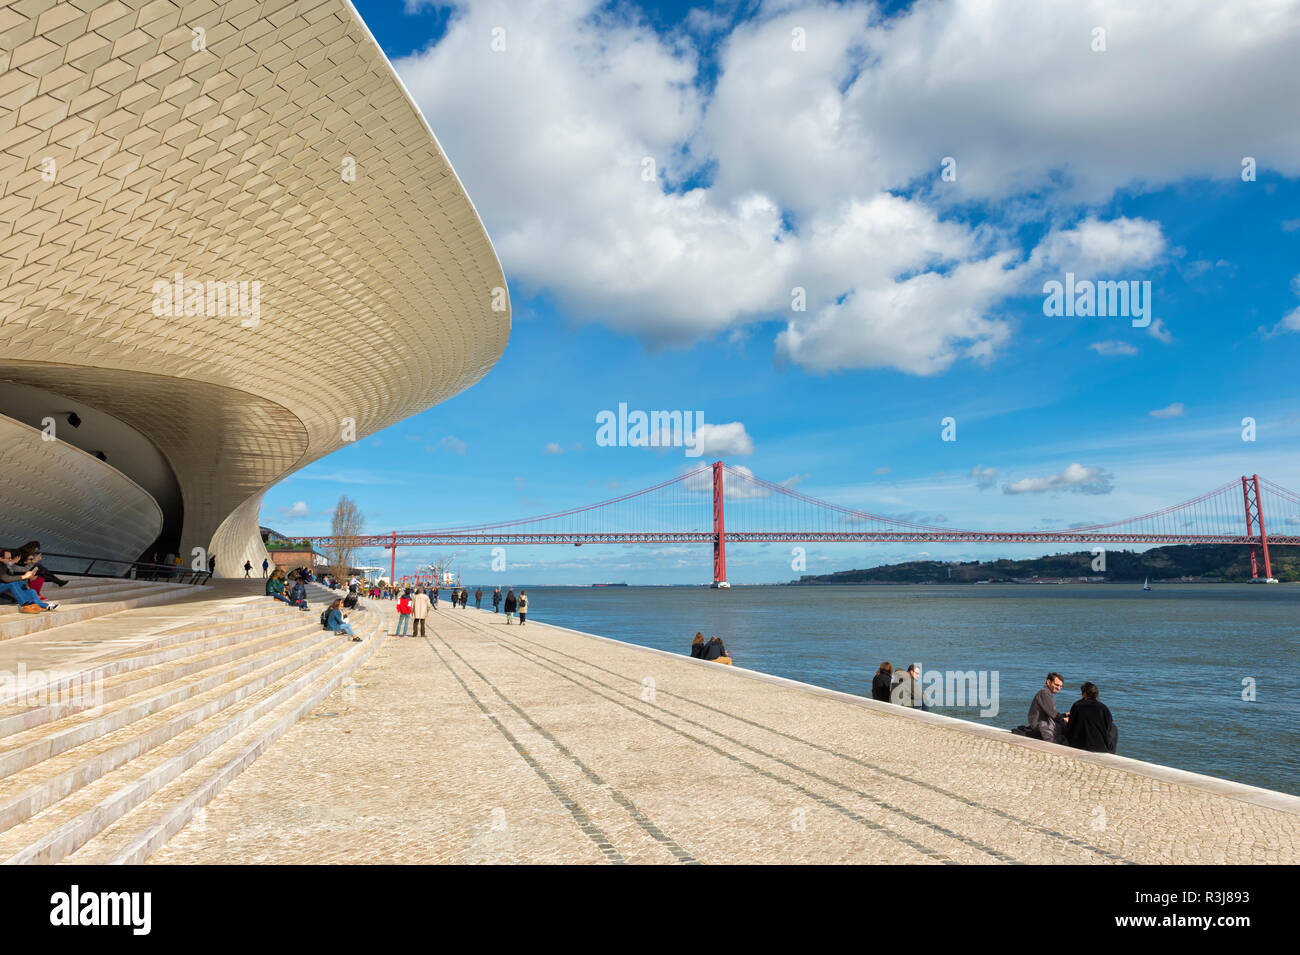 Ponte 25 de Abril bridge over the Tagus river, viewed from the MAAT, Museum of Art, Architecture and Technology, Lisbon Stock Photo